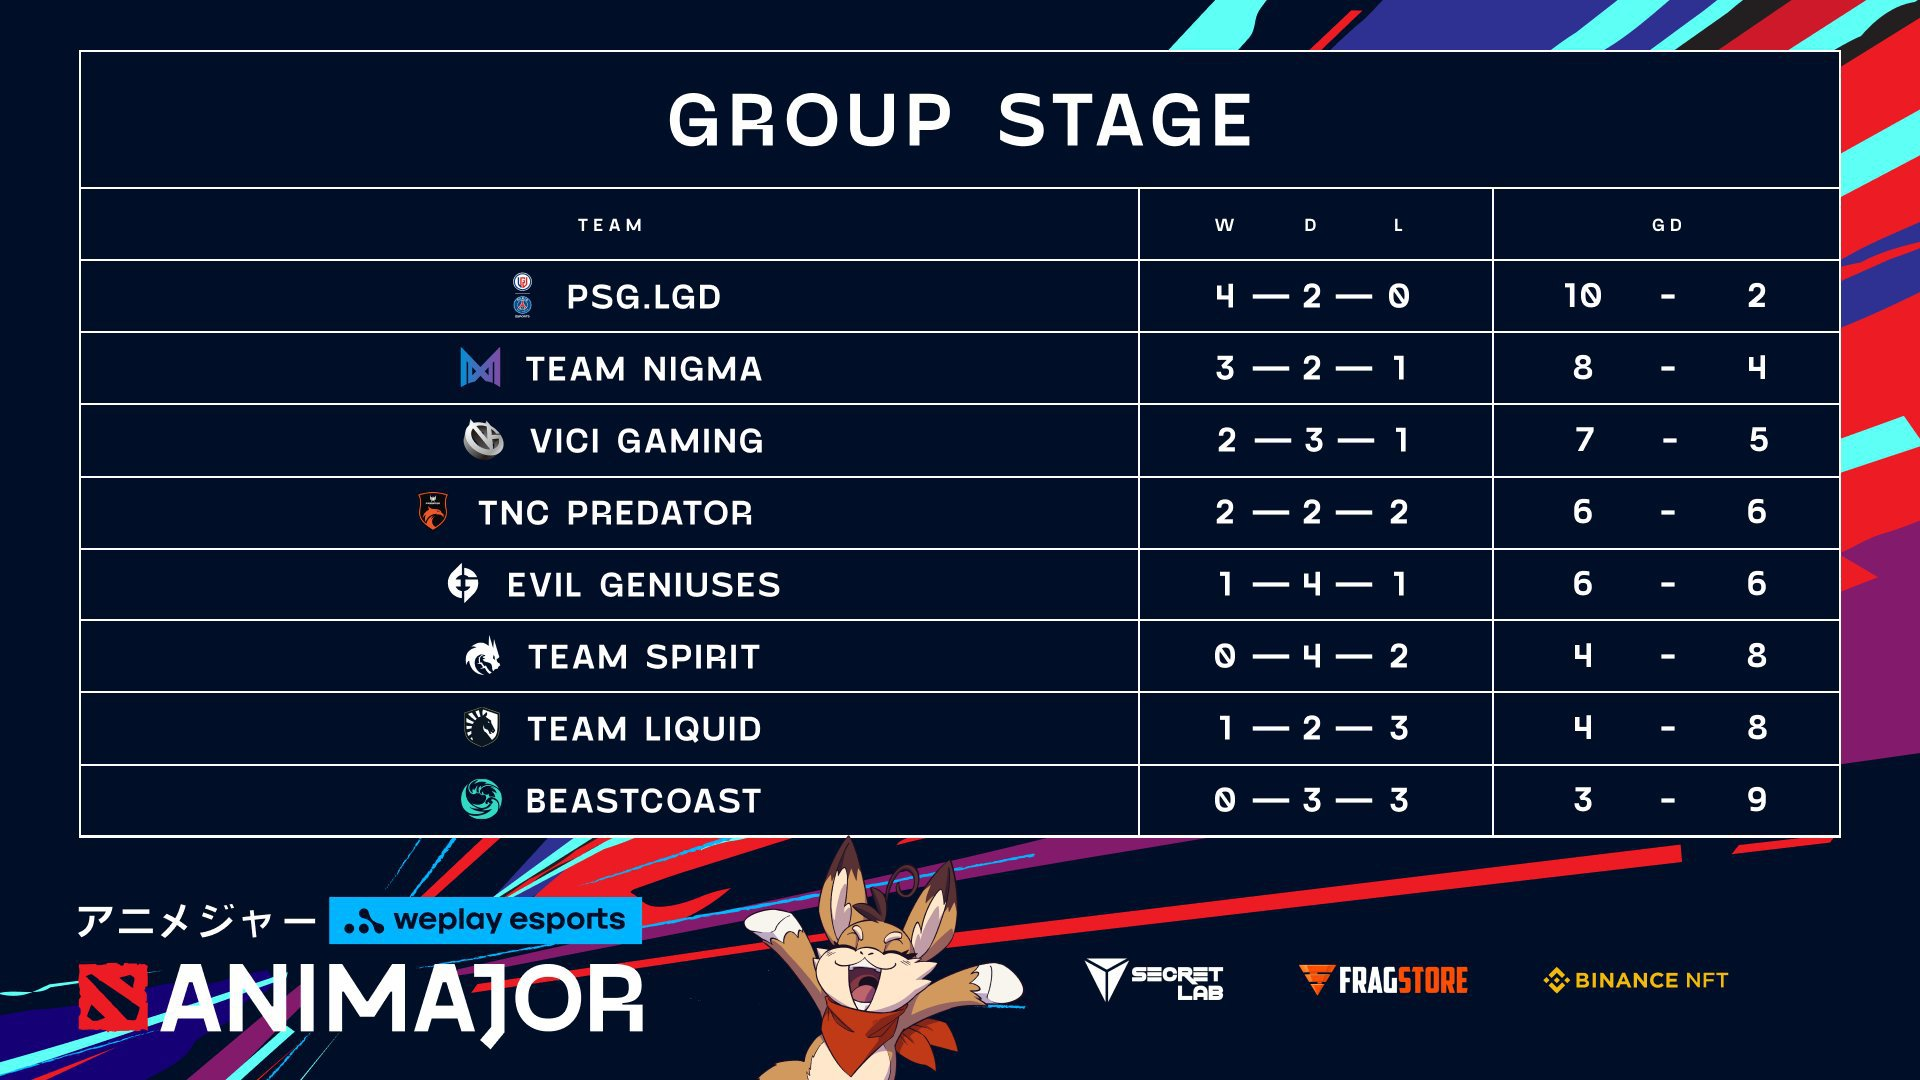 Third day of WePlay AniMajor Group Stage chart! Image: WePlay Holding